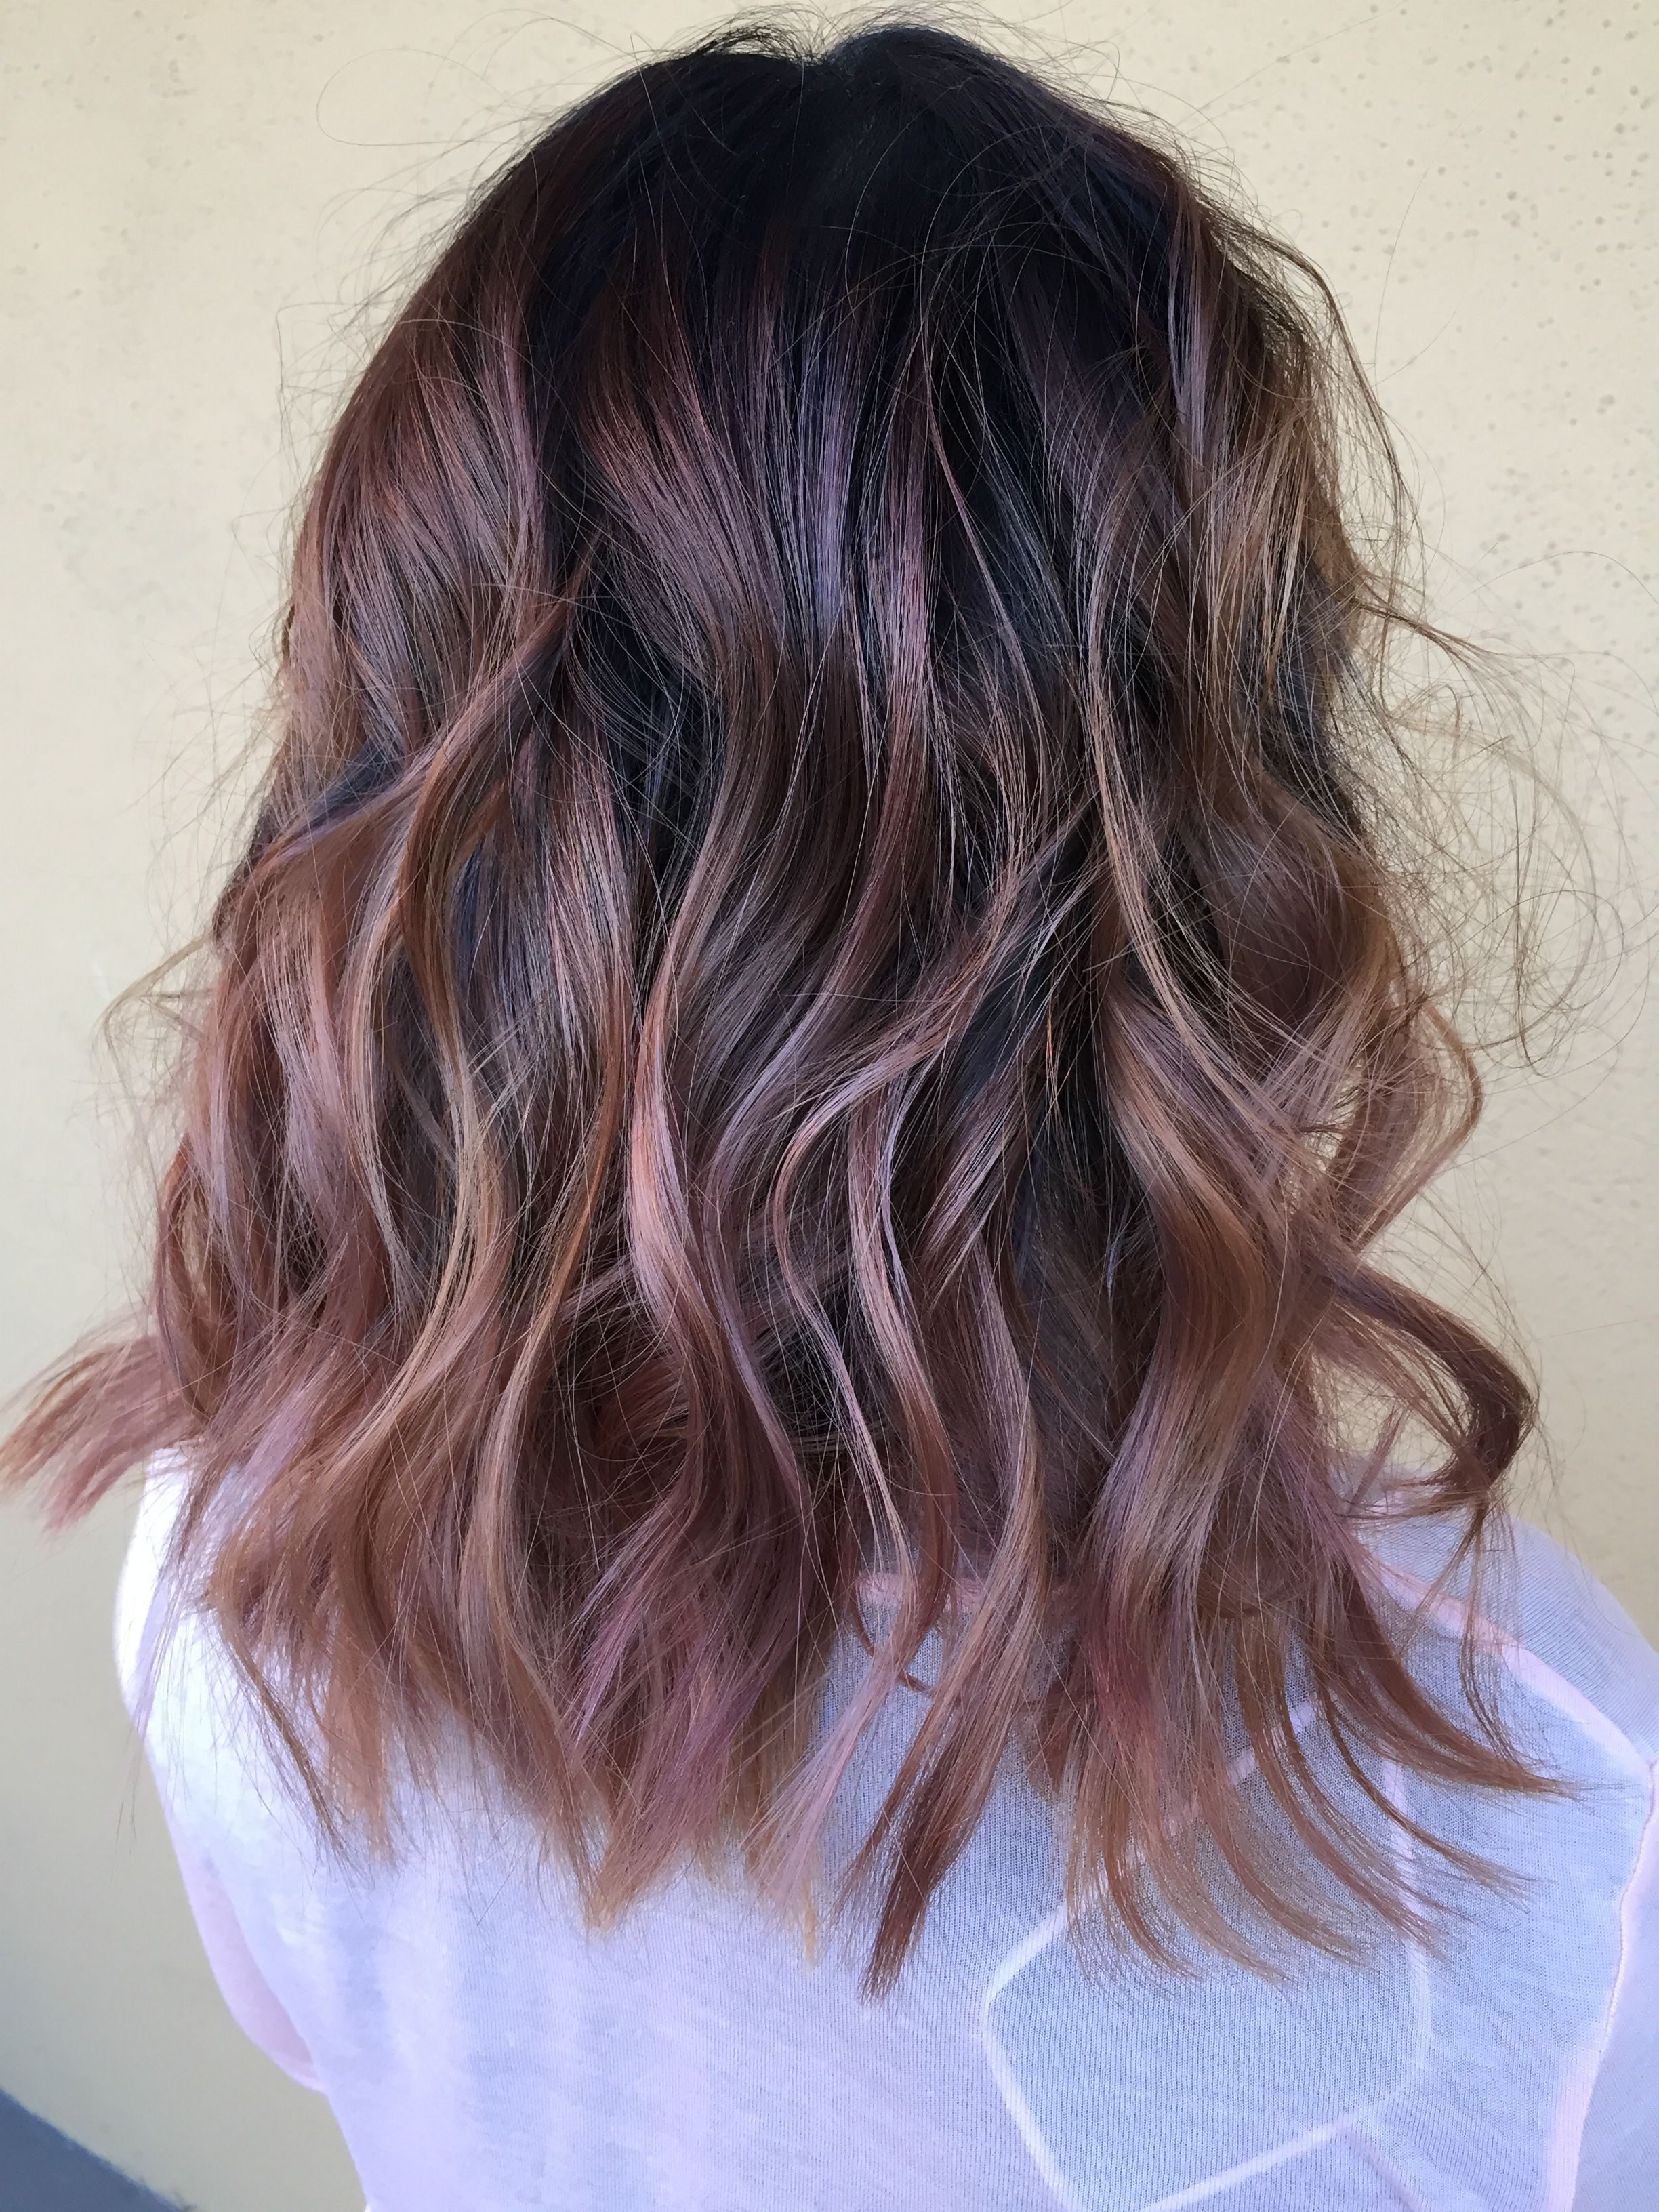 Dusty Rose Gold Balayage On D Lushus By Allison Gregg At Rockin Locks In Long Beach Ca Blonde Hair Colour Shades Rose Hair Rose Gold Balayage